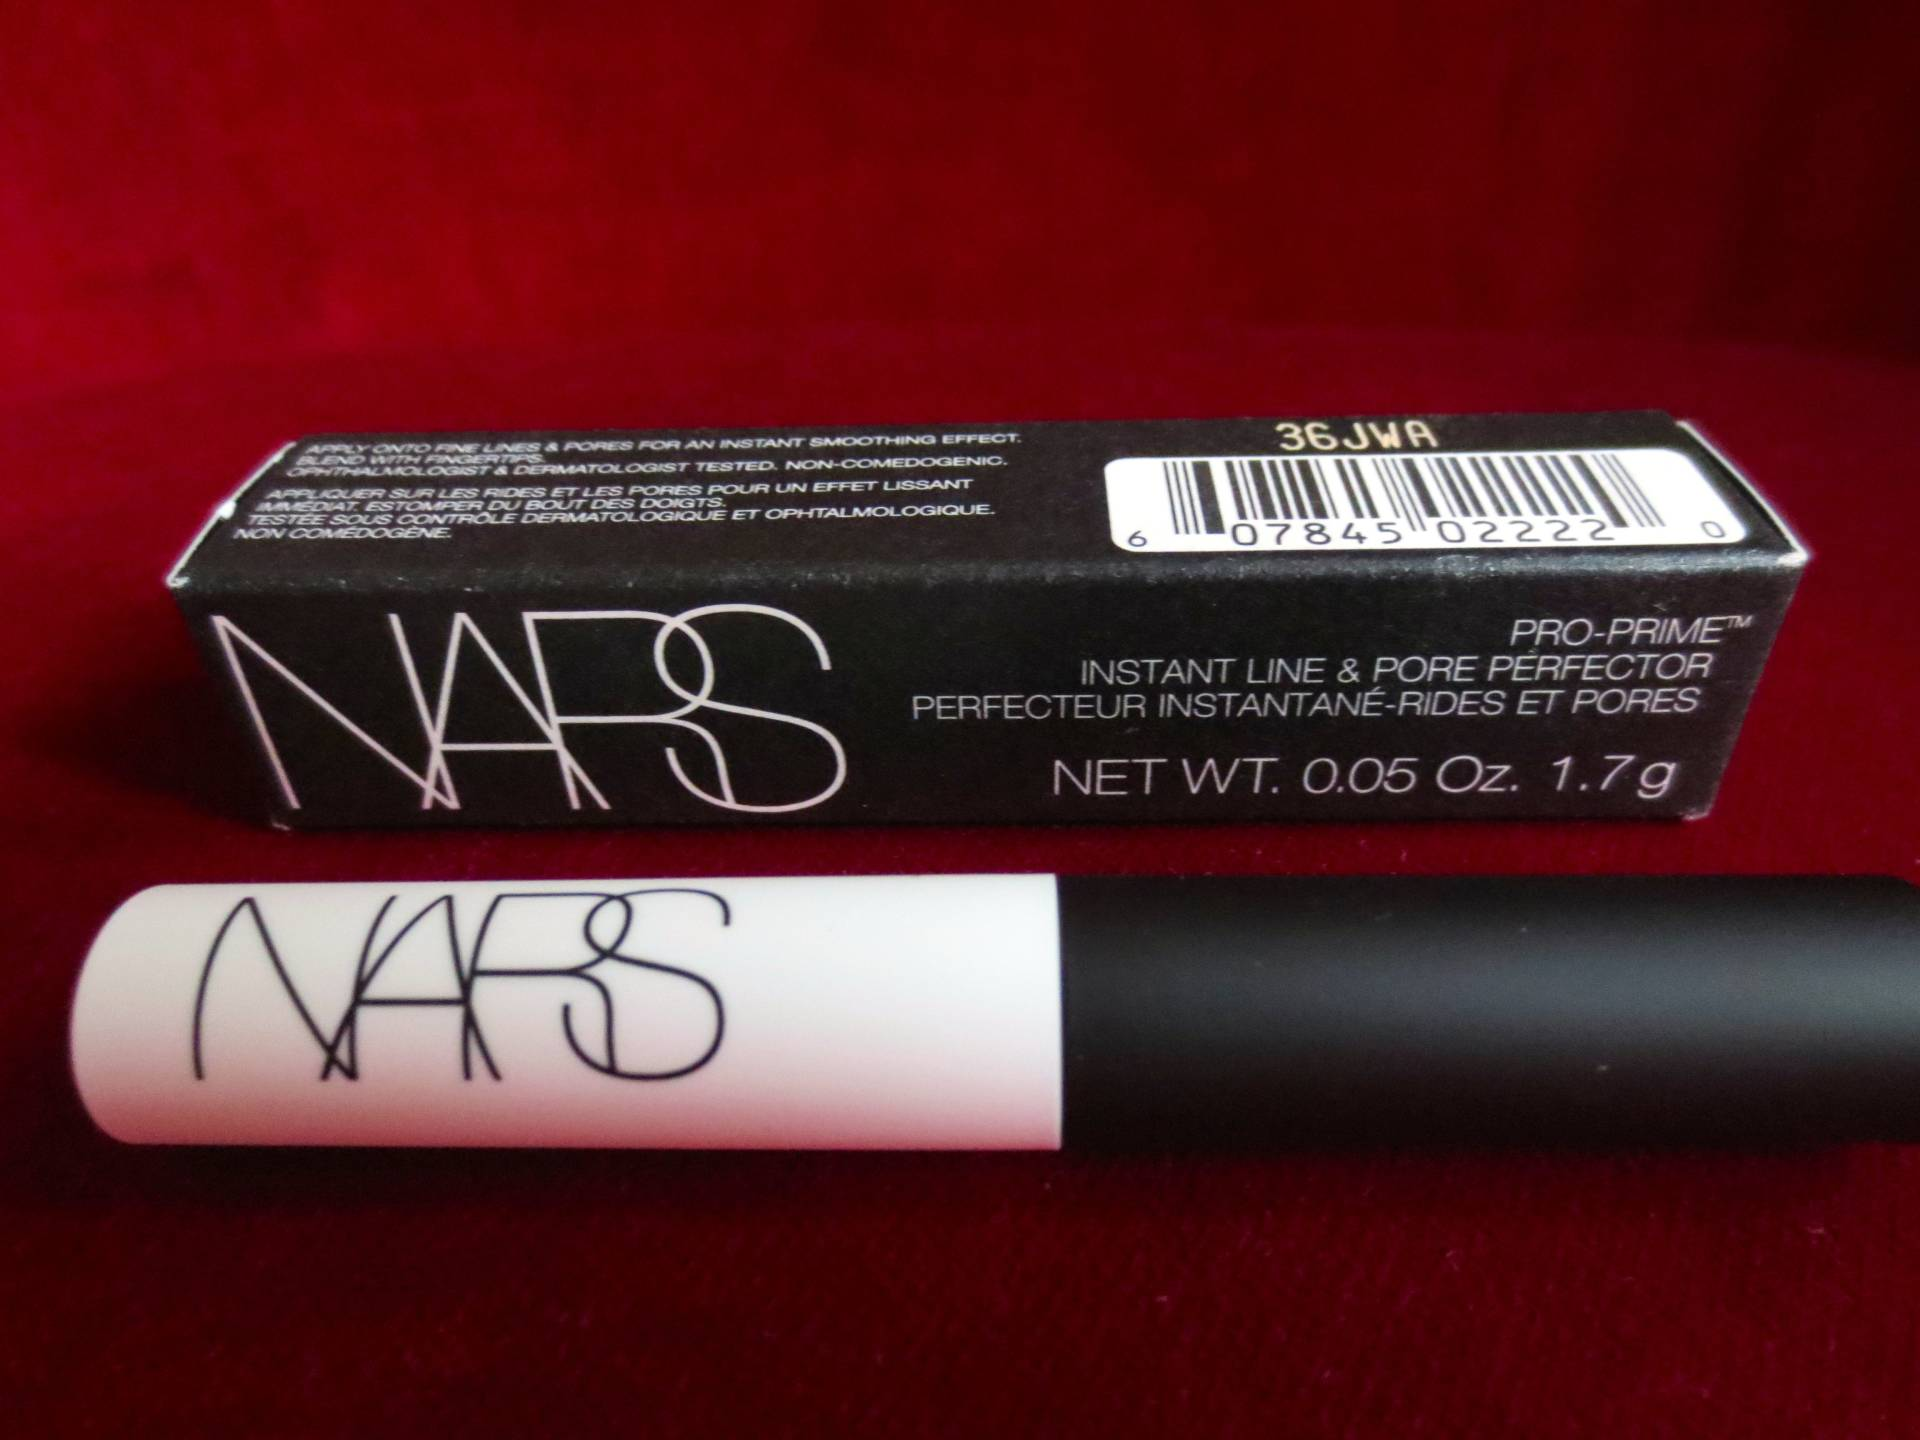 Nars Pro-Prime instant line and pore perfector